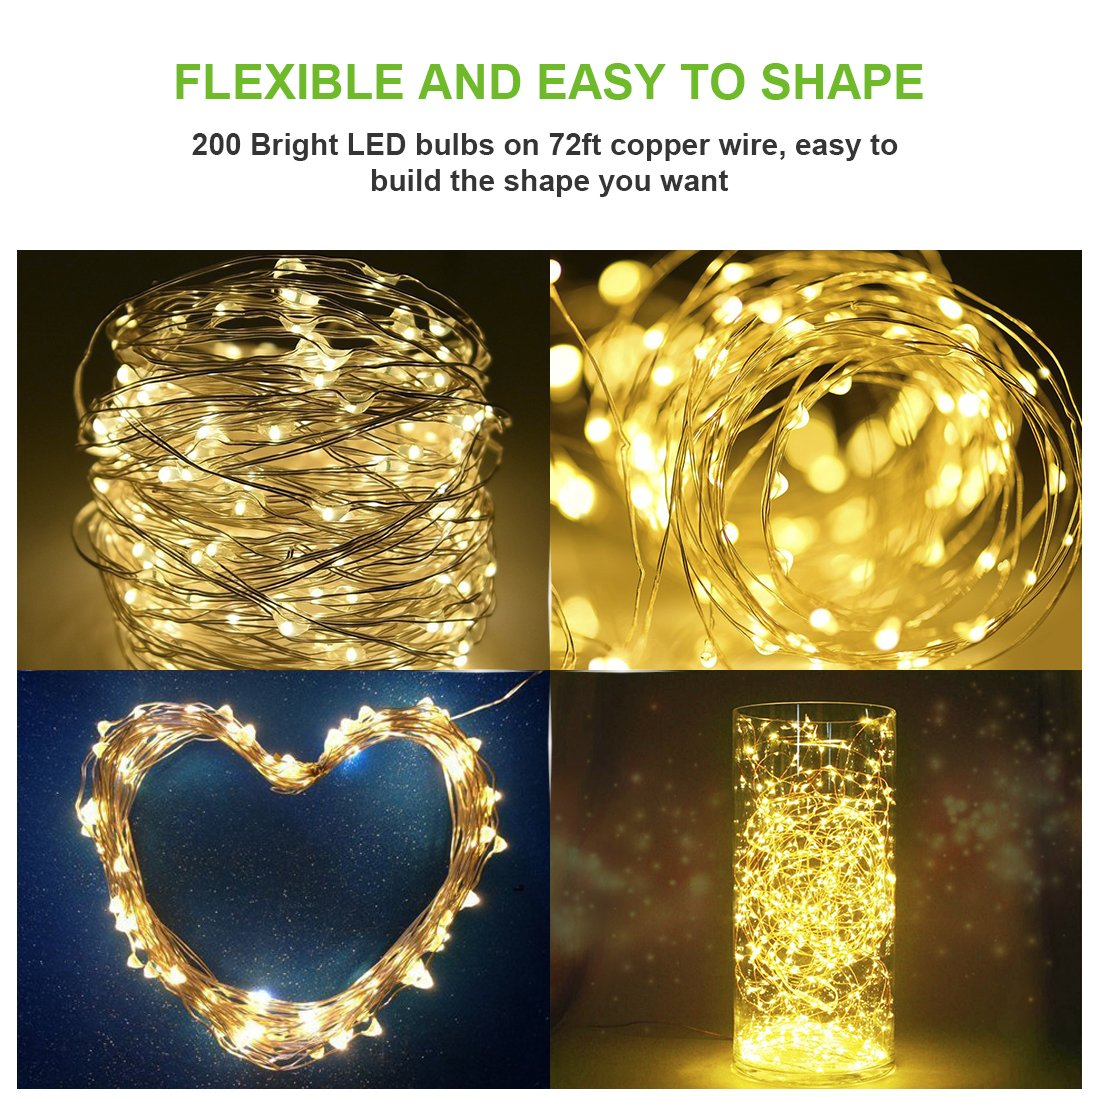 Rophie 200 LEDs Solar String Lights 72 foot Warm White String Lights by Rophie (Image #5)